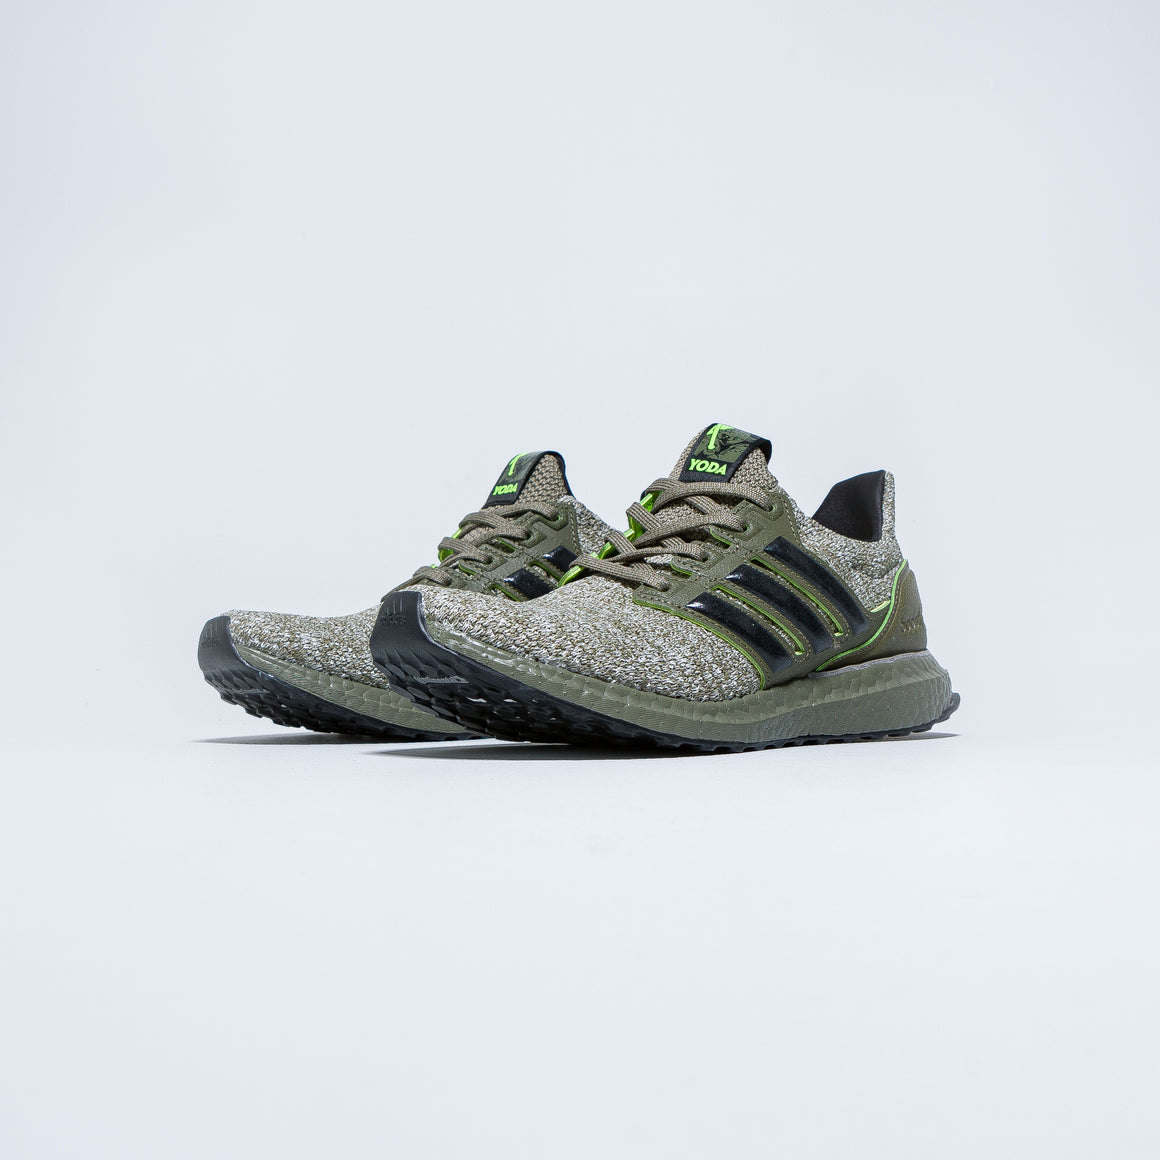 UltraBOOST DNA x Star Wars 'Yoda' - Trace Cargo/Core Black